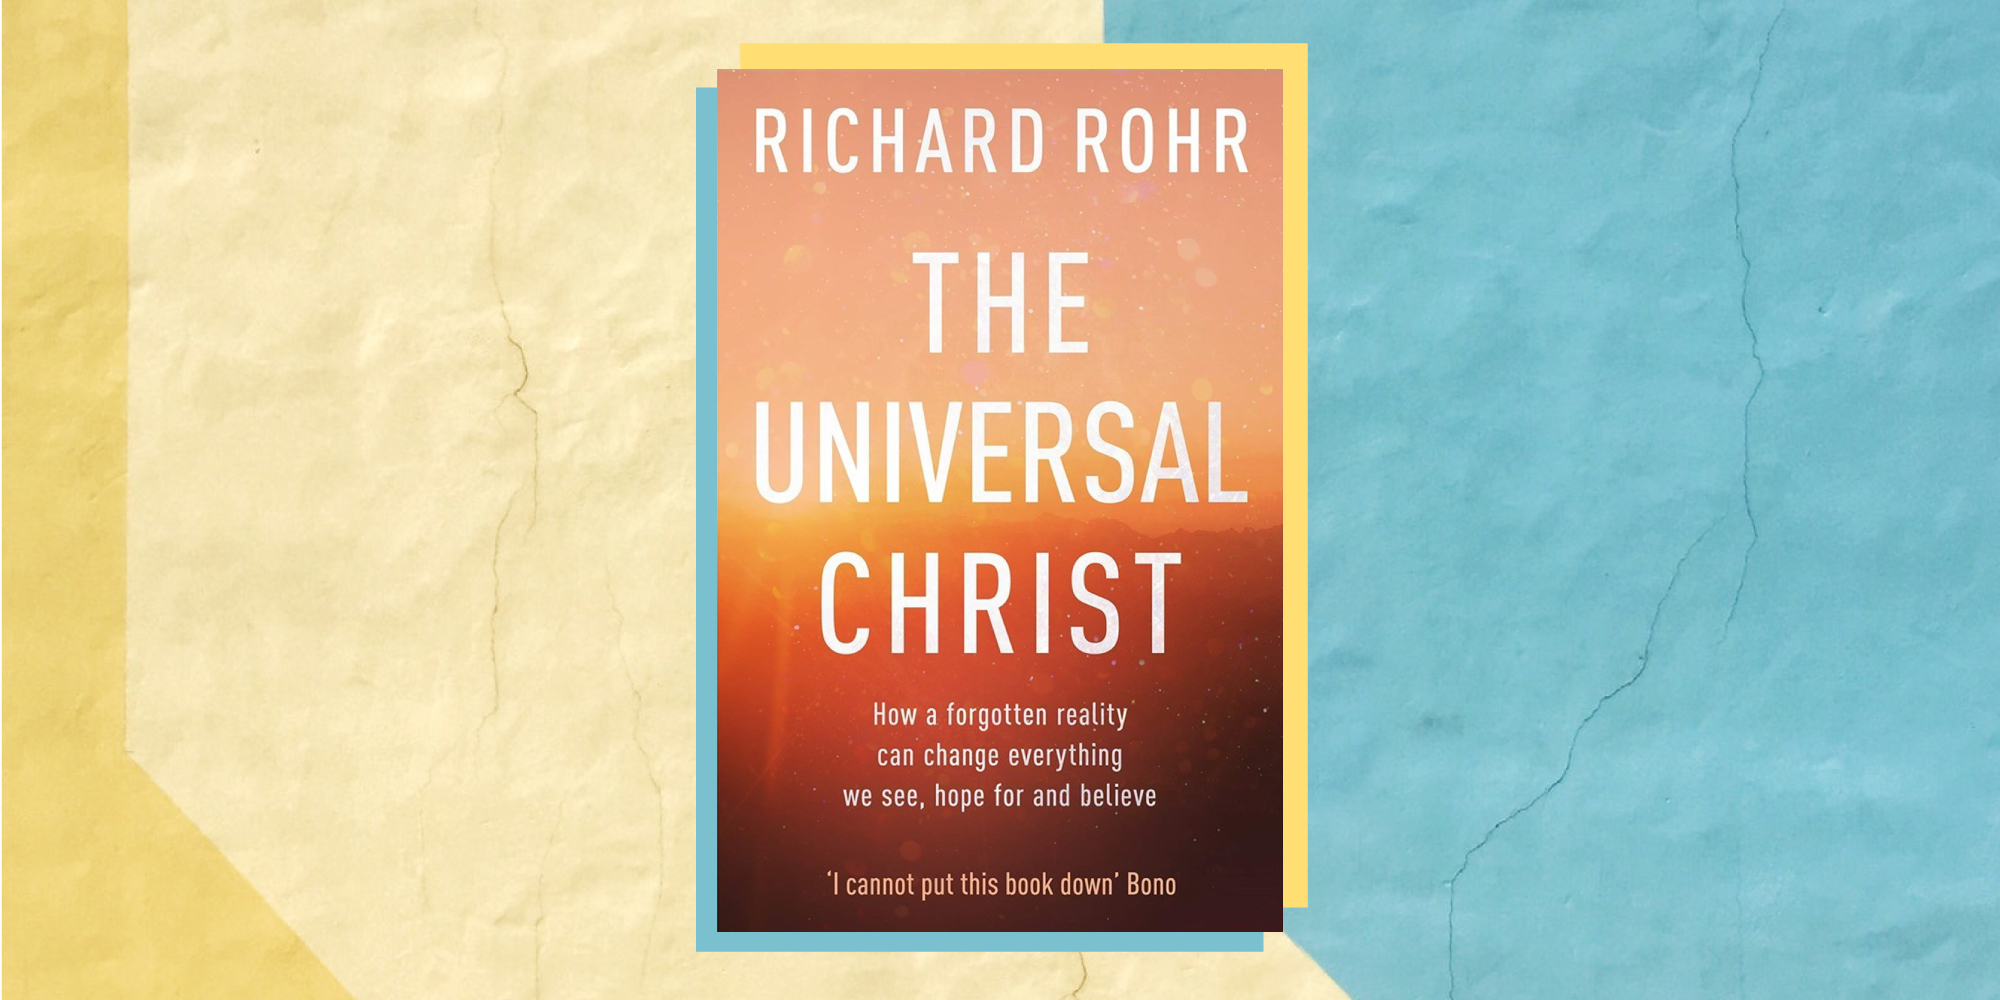 the-universal-christ-richard-rohr-book-club-bro-brother-bear-blog.jpg